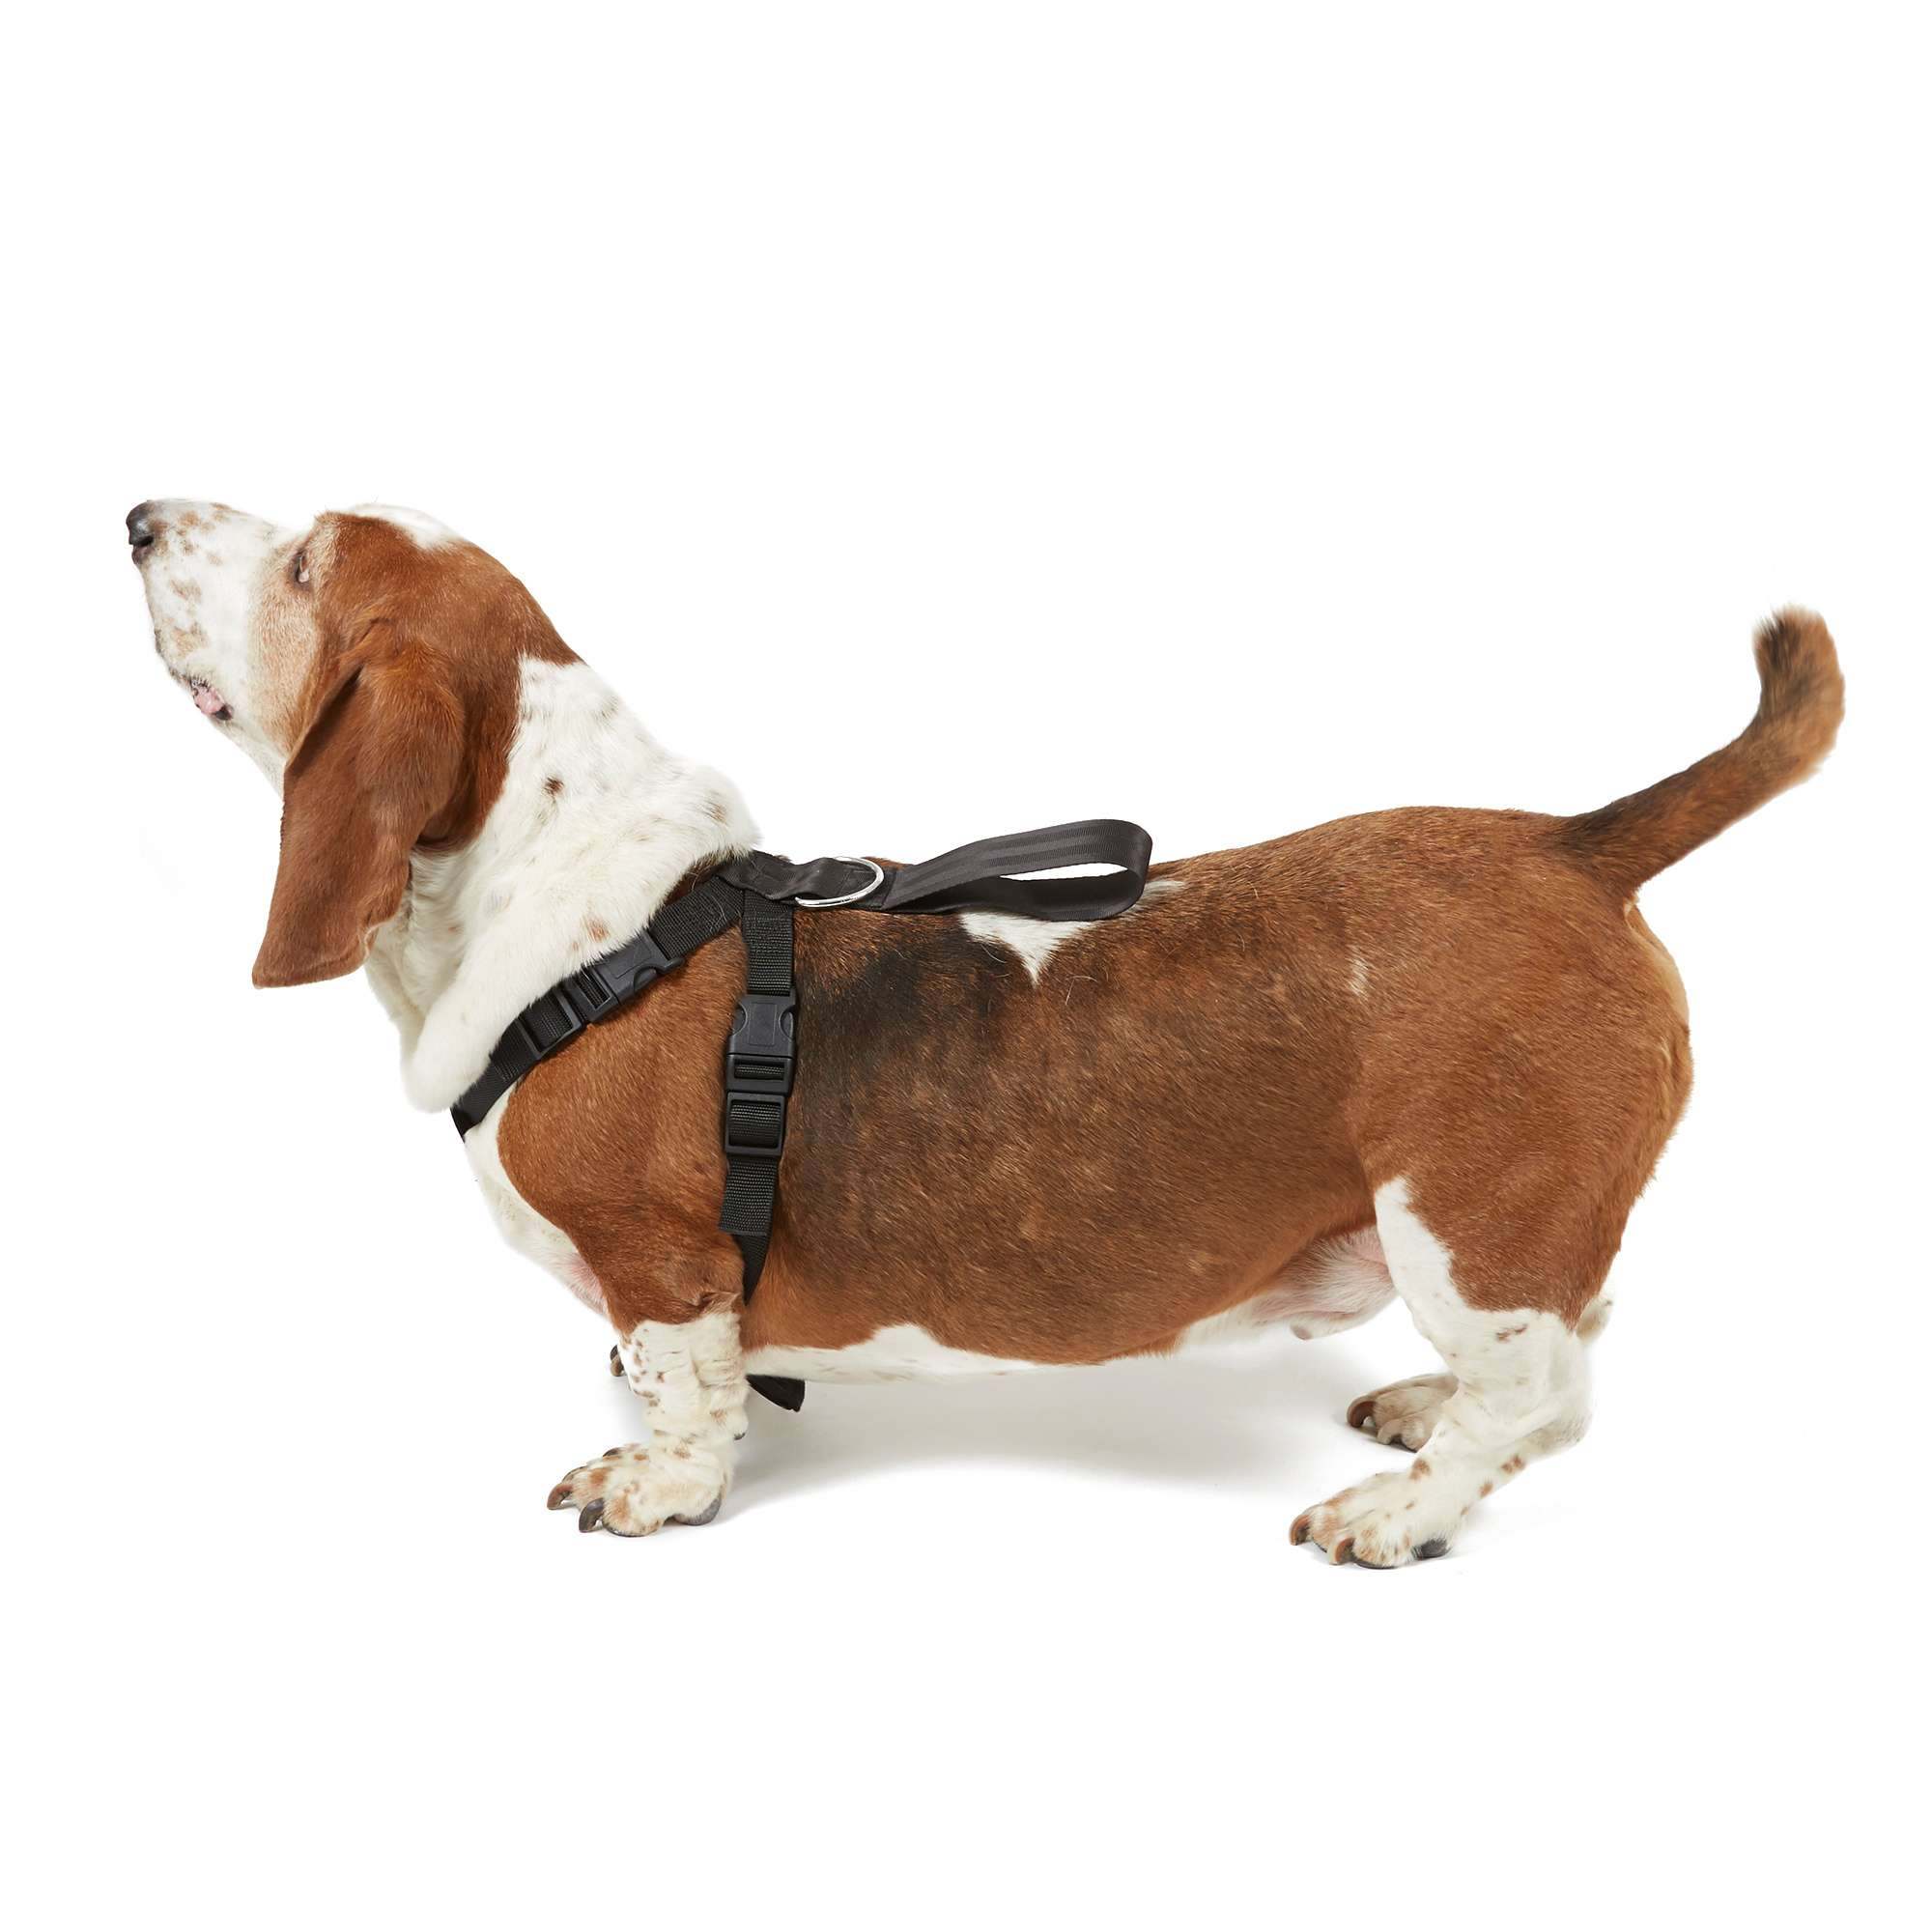 BOYZ TOYS Dog Harness - Medium